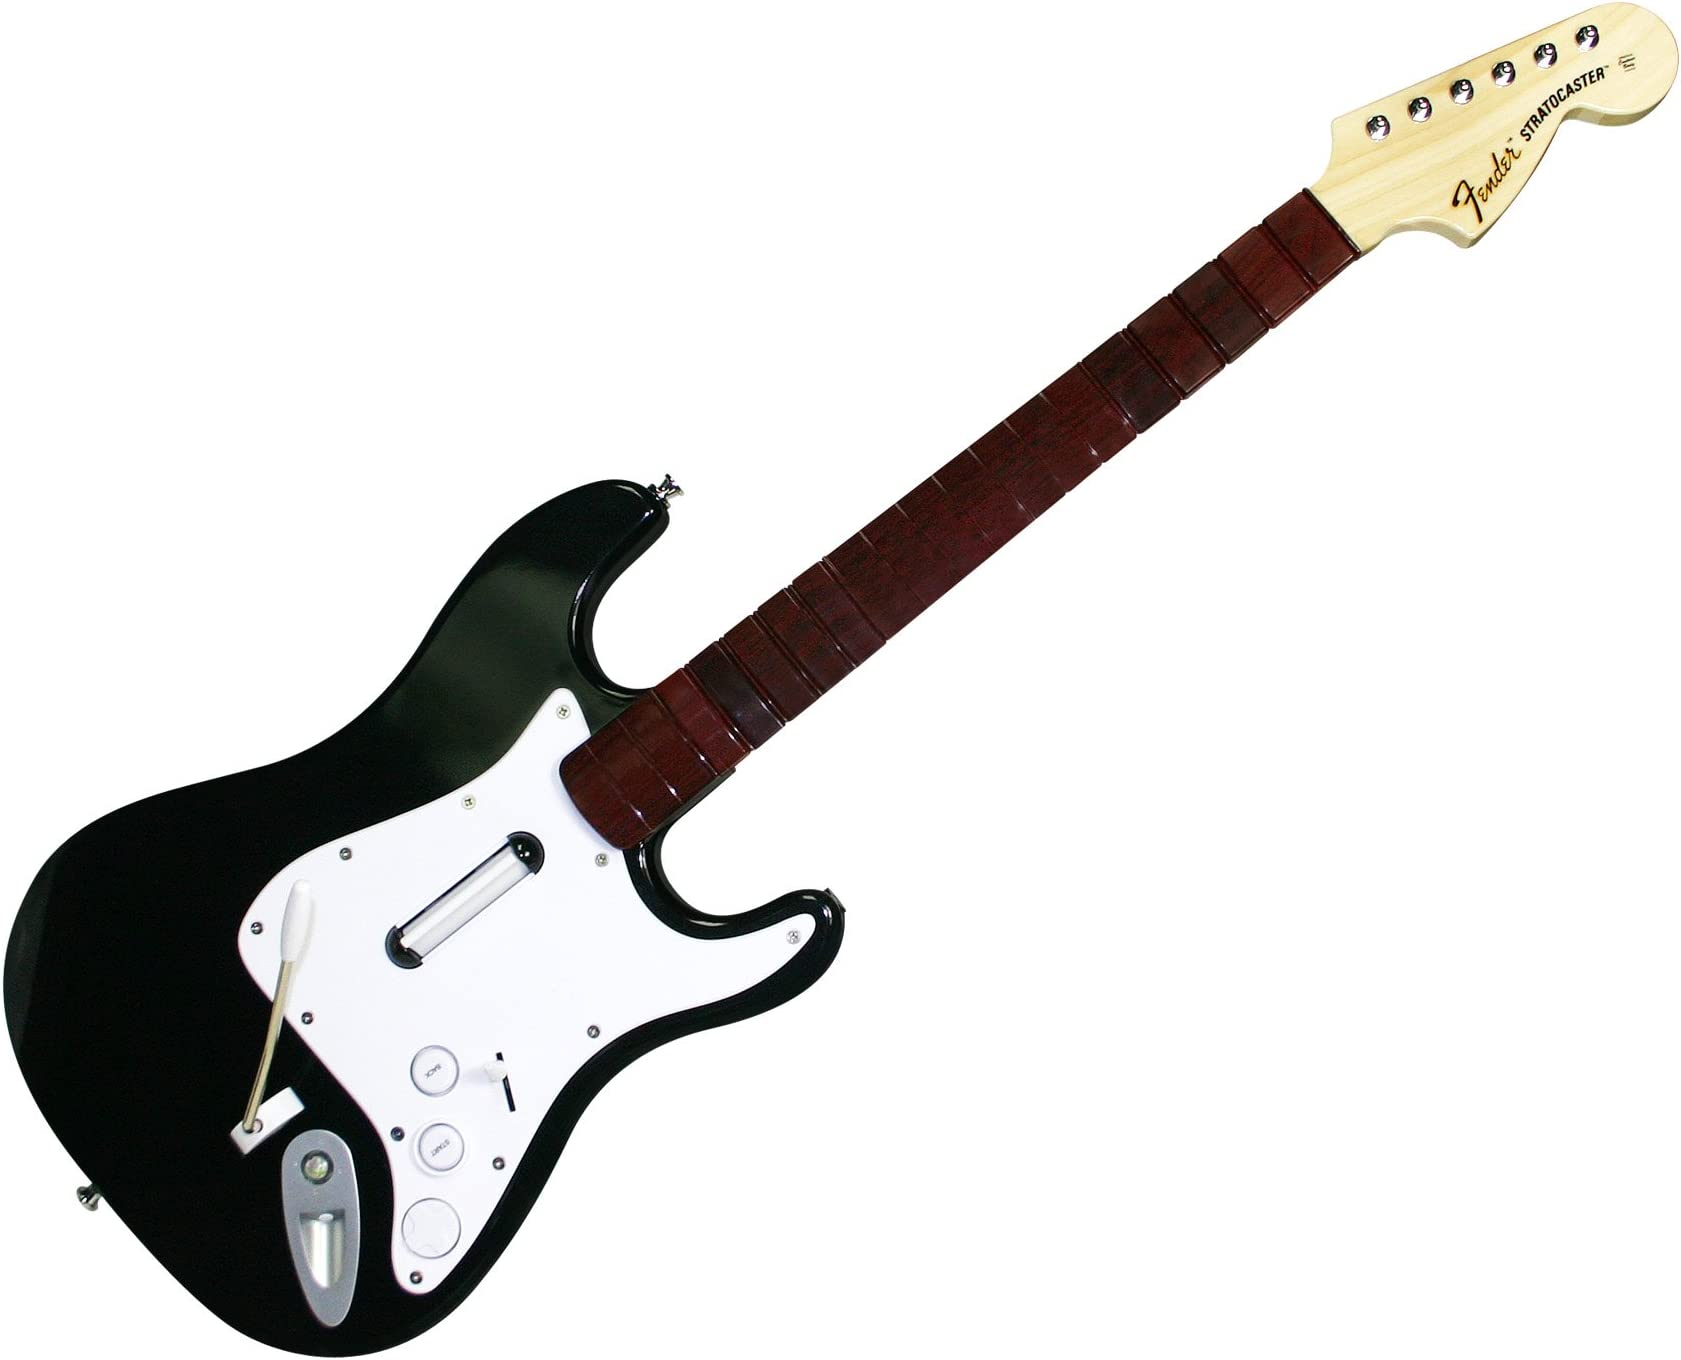 rock band 3 wireless fender stratocaster guitar